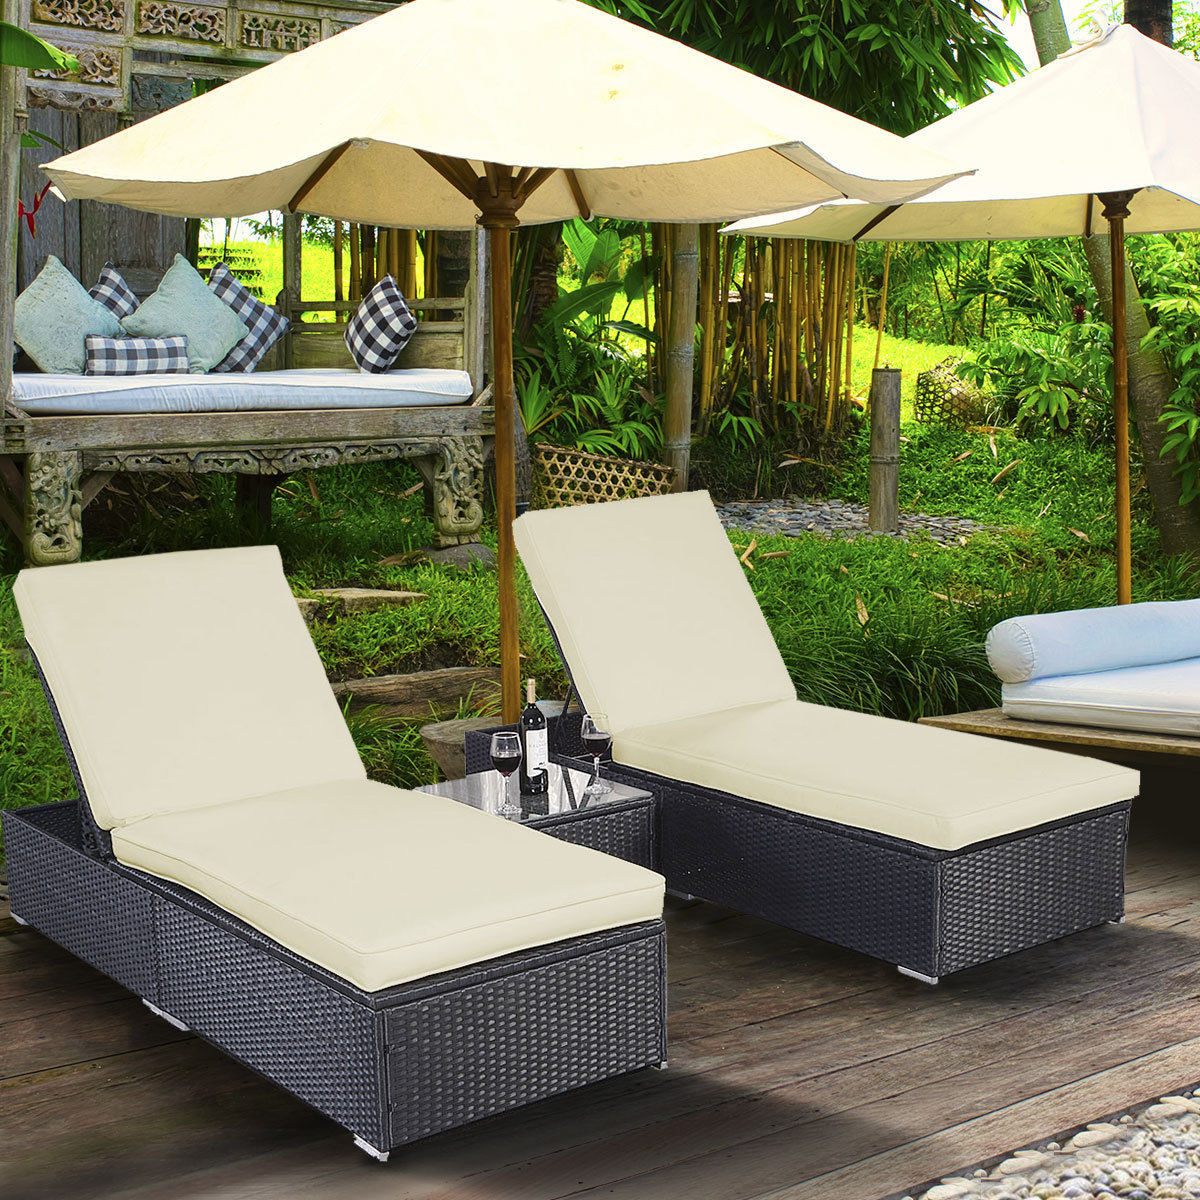 Discount Deck Furniture 25 Of The Best Places To Buy Outdoor Furniture